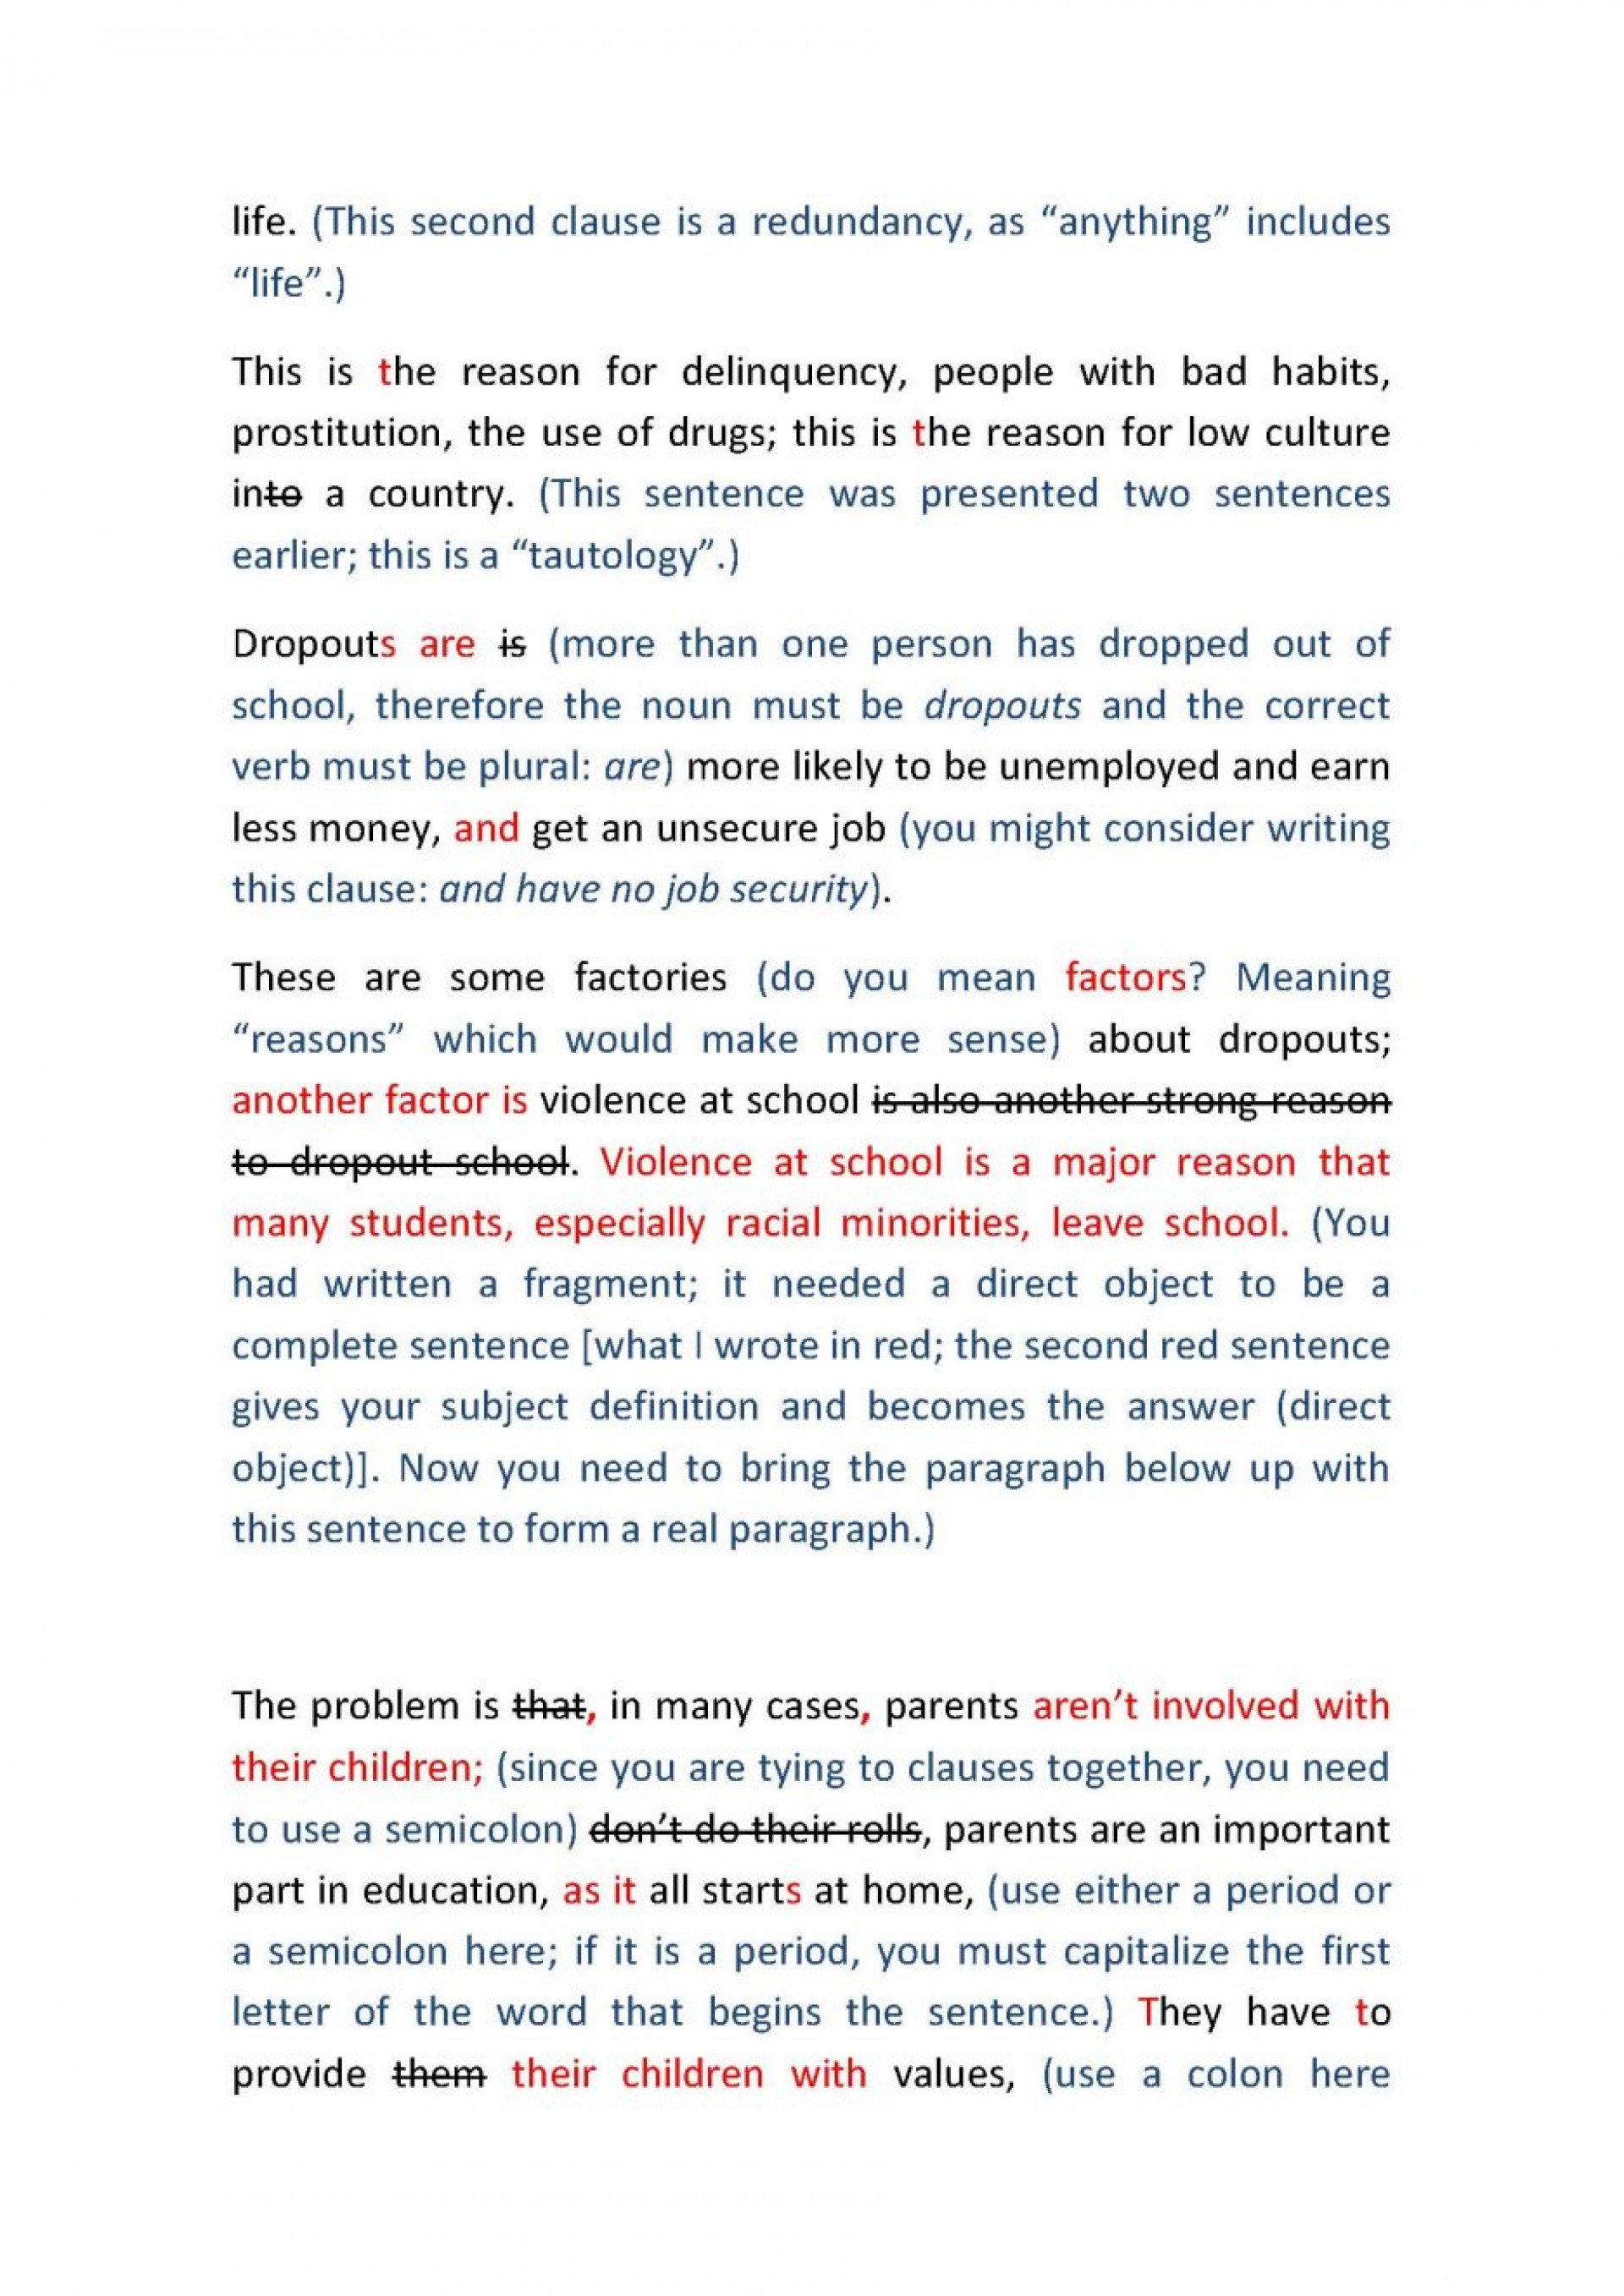 017 Essay Example On Father Dropouts Dialey And Graded Page Daughter Relationship School My In French Thematic Sun Johnson Urdu Hindi Marathi An Order For Year Muslim Sanskrit Outstanding Fatherhood Mother Motherhood 1920